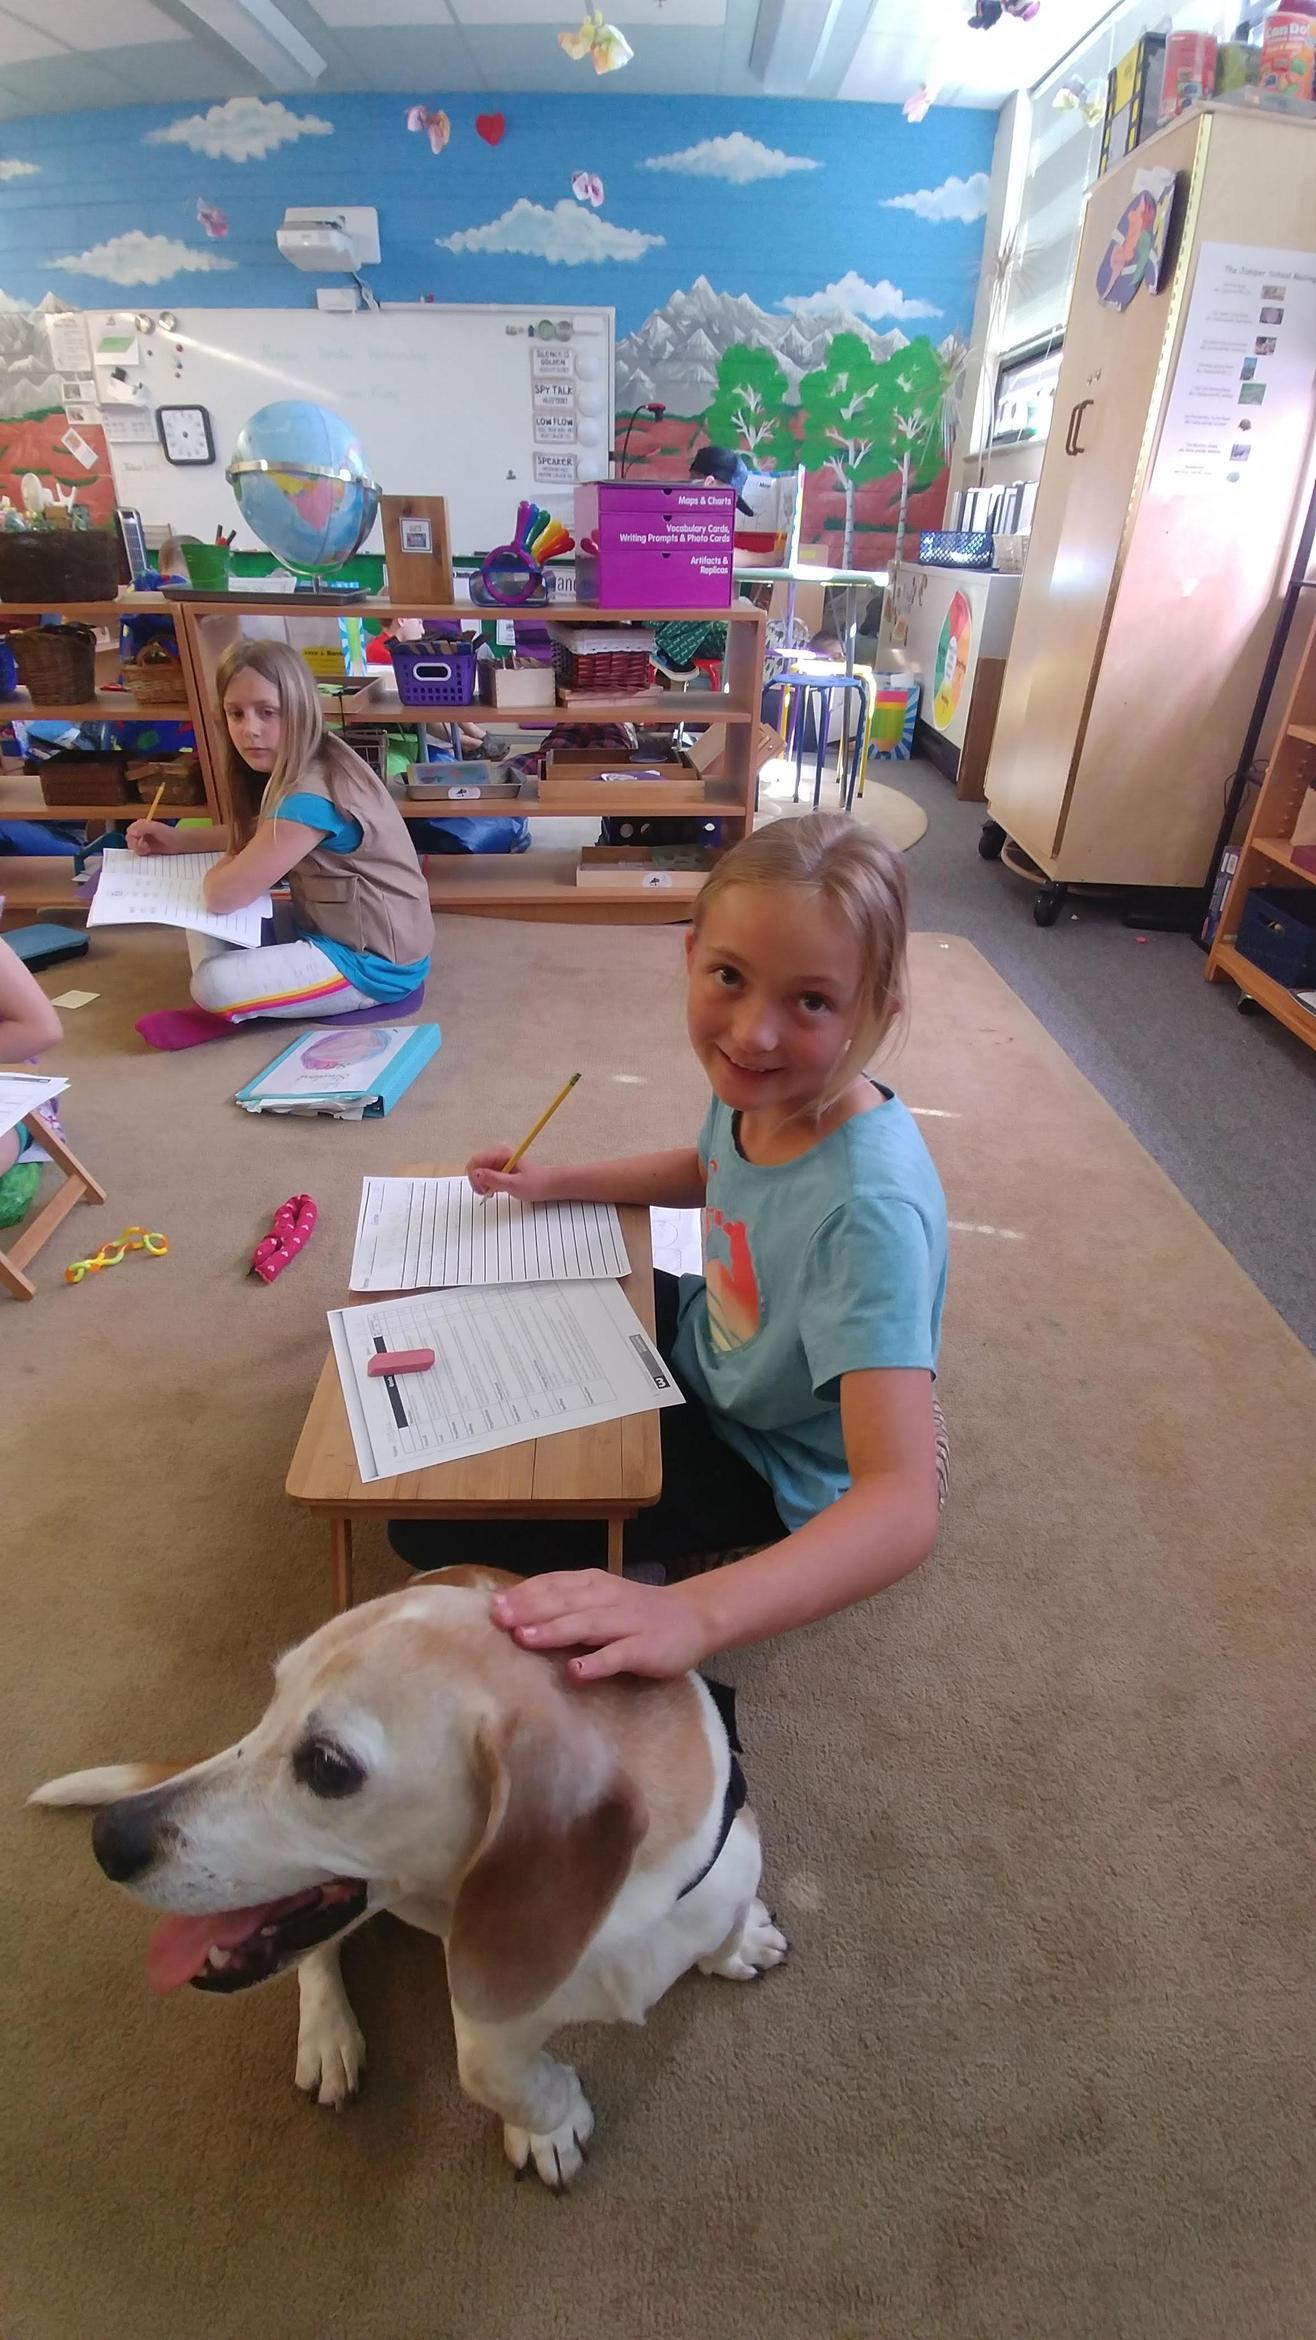 Cricket the dog doing work with the kiddos